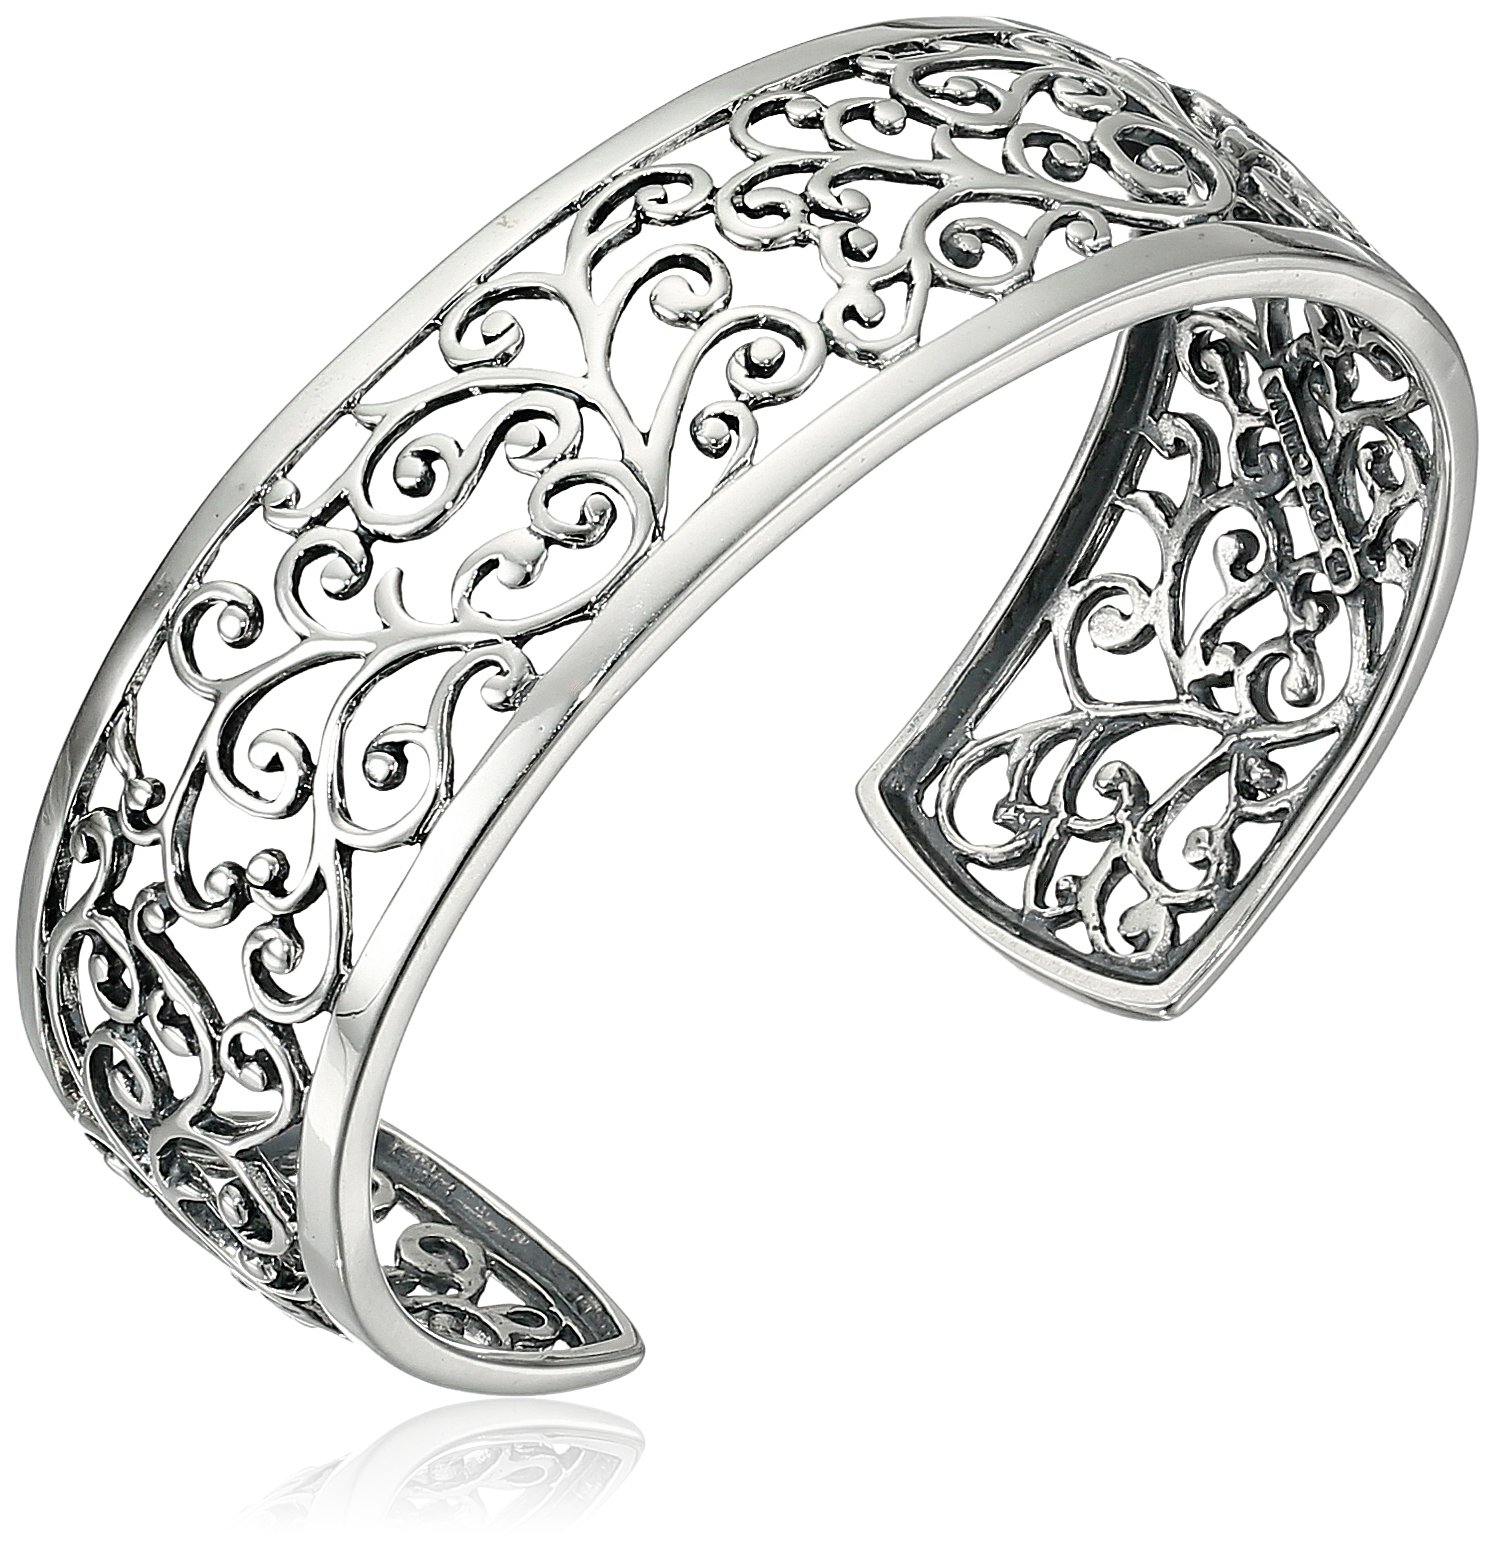 Sterling Silver Oxidized Filigree Cuff Bracelet, 6.5''